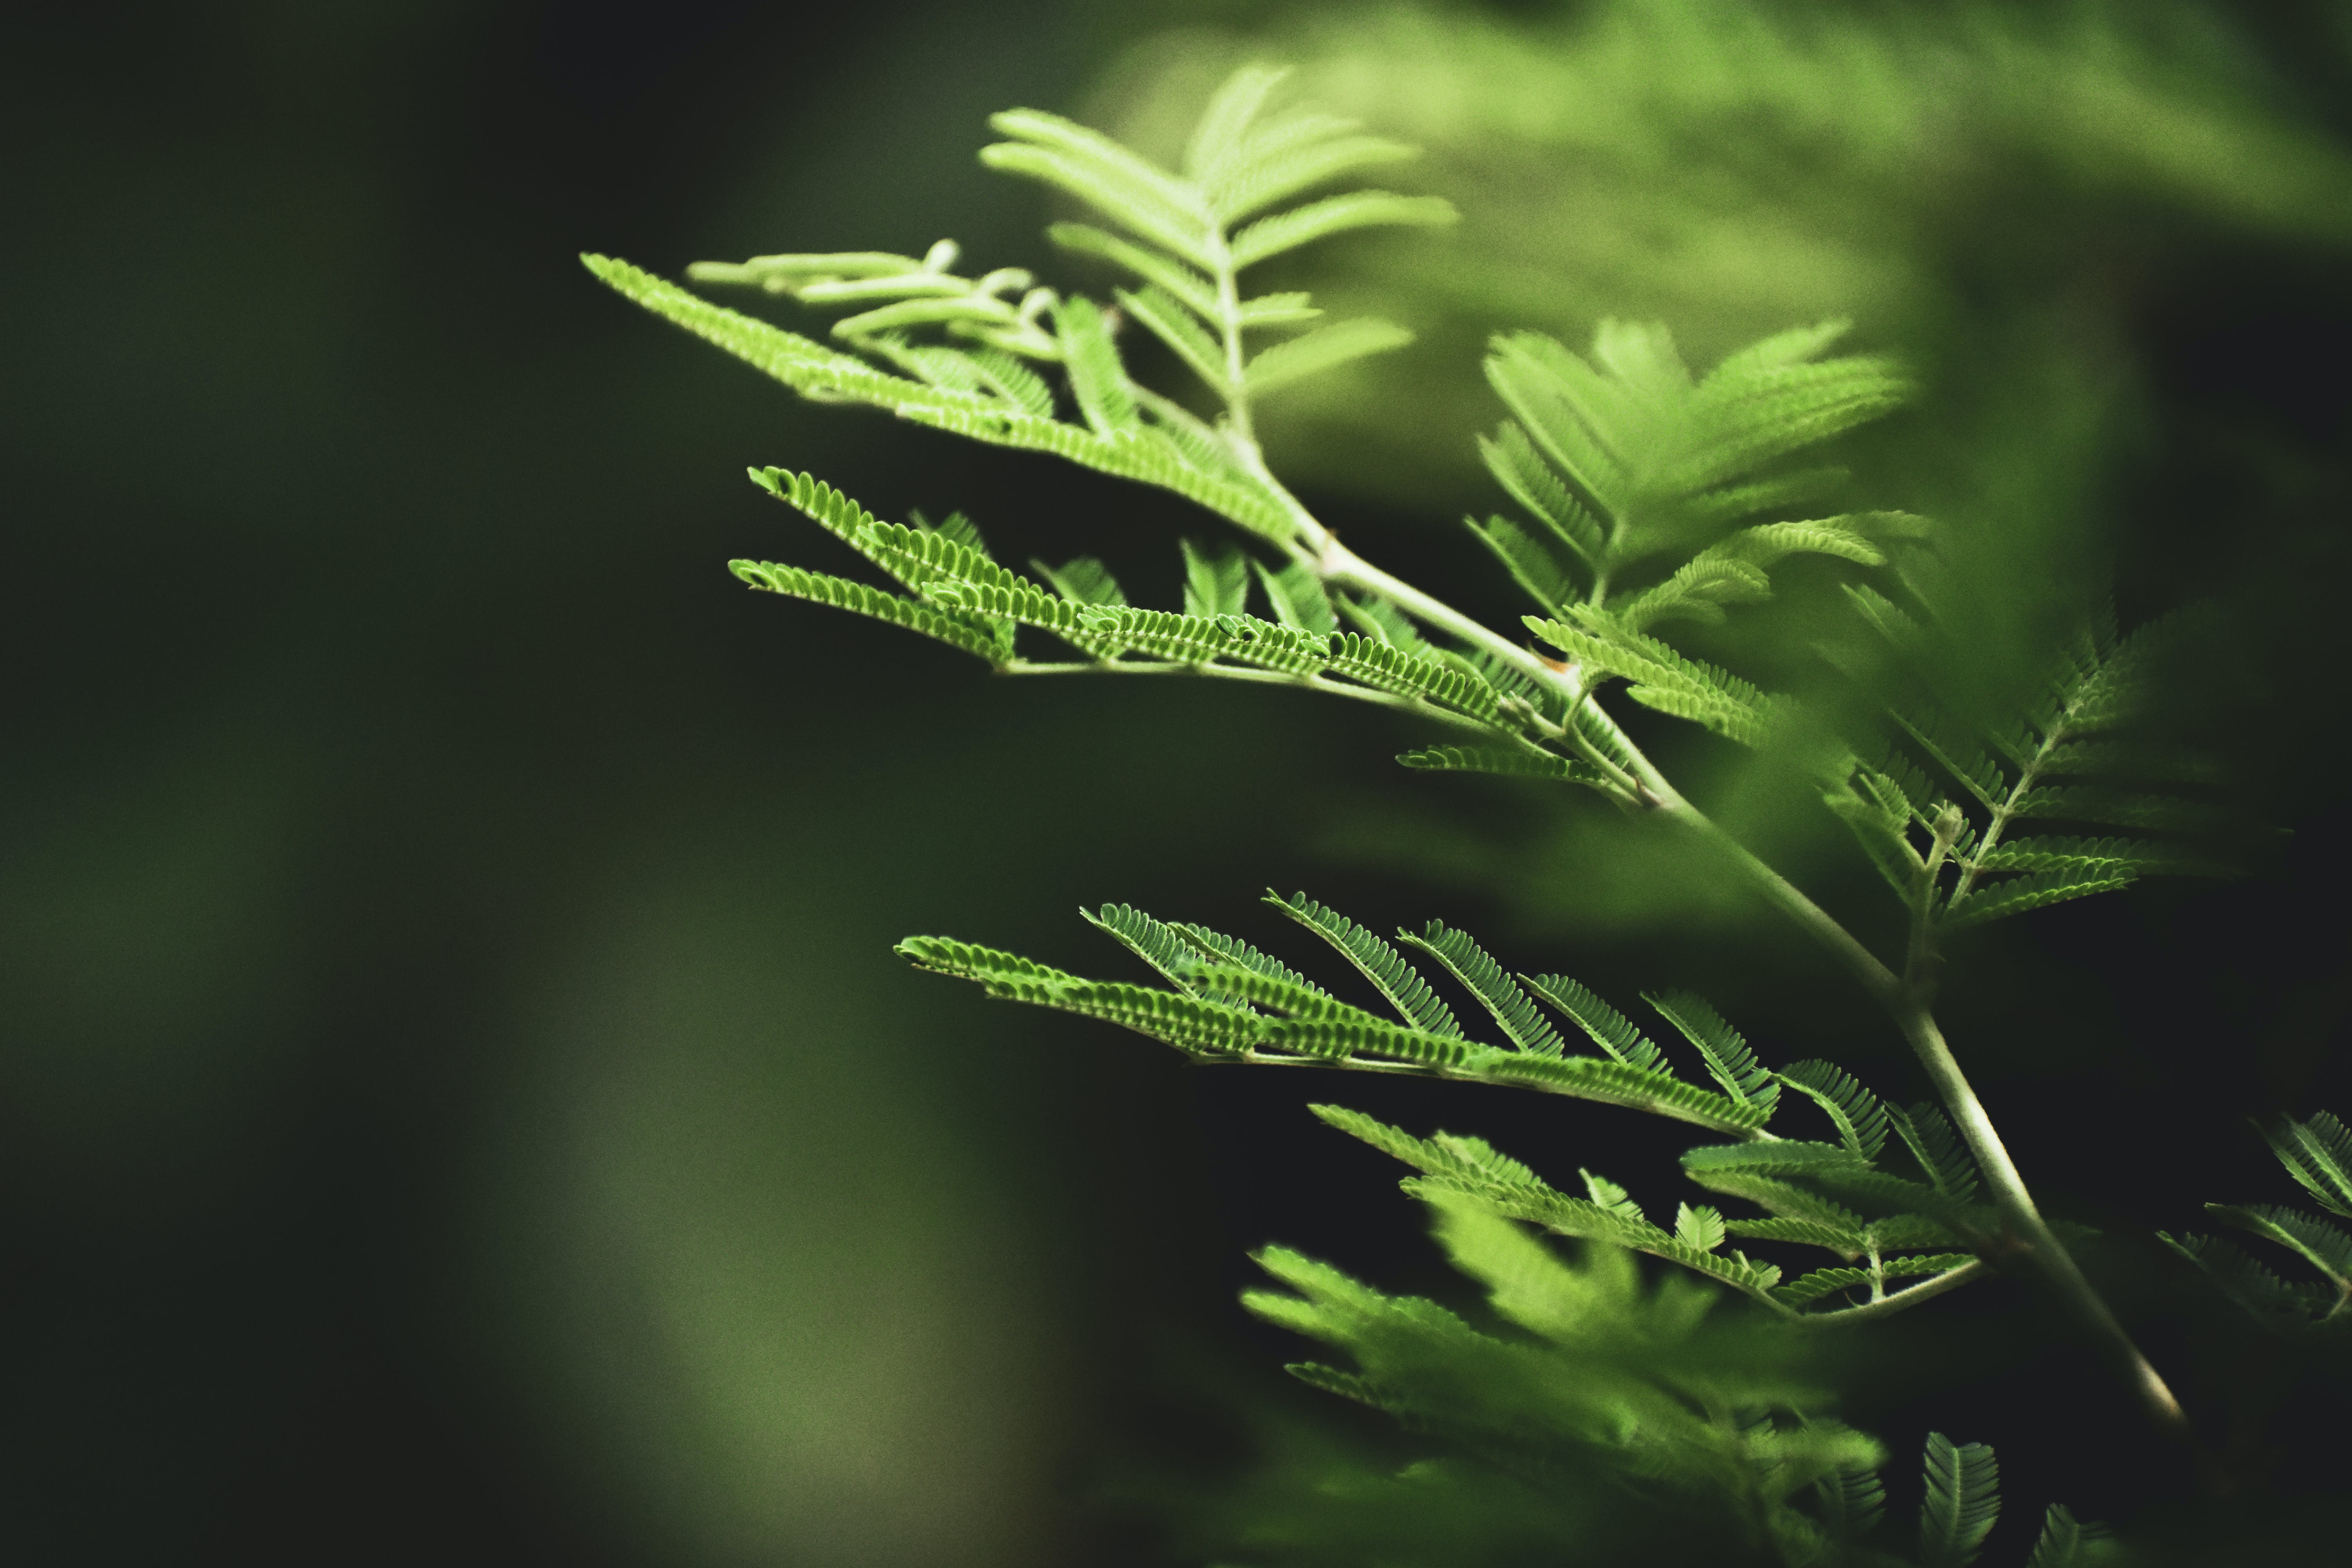 Selective Focus Photography of Fern Leaves